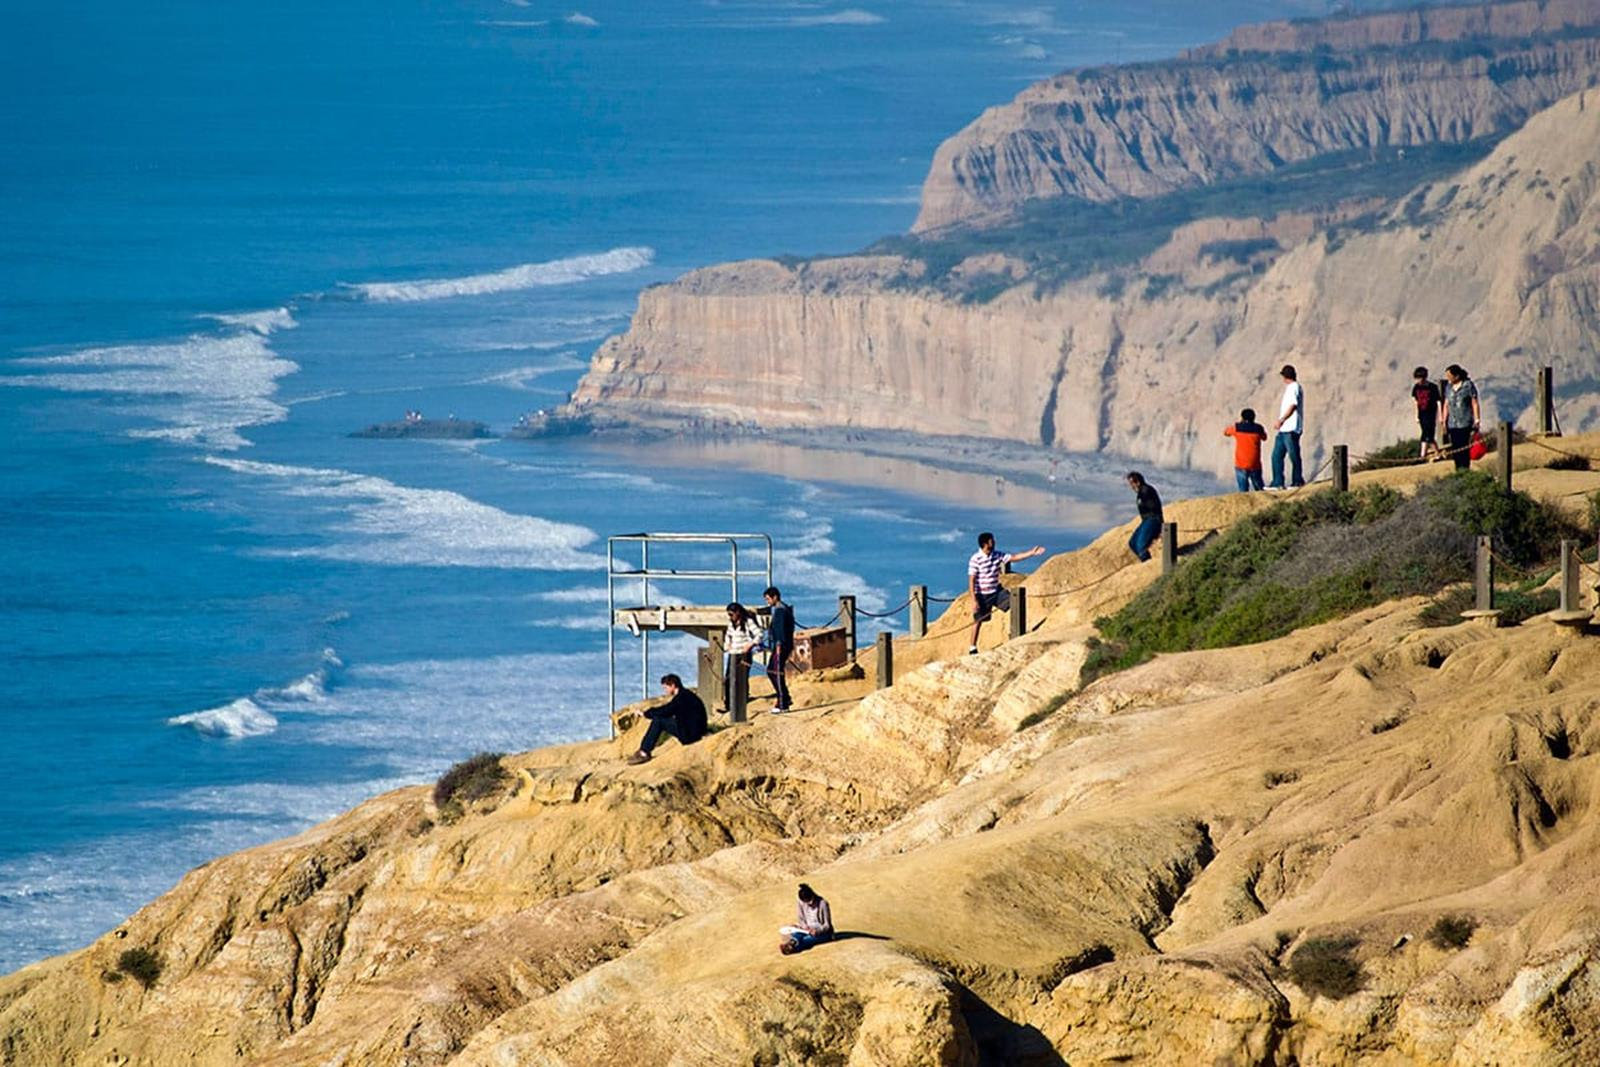 Torry Pines State Natural Reserve